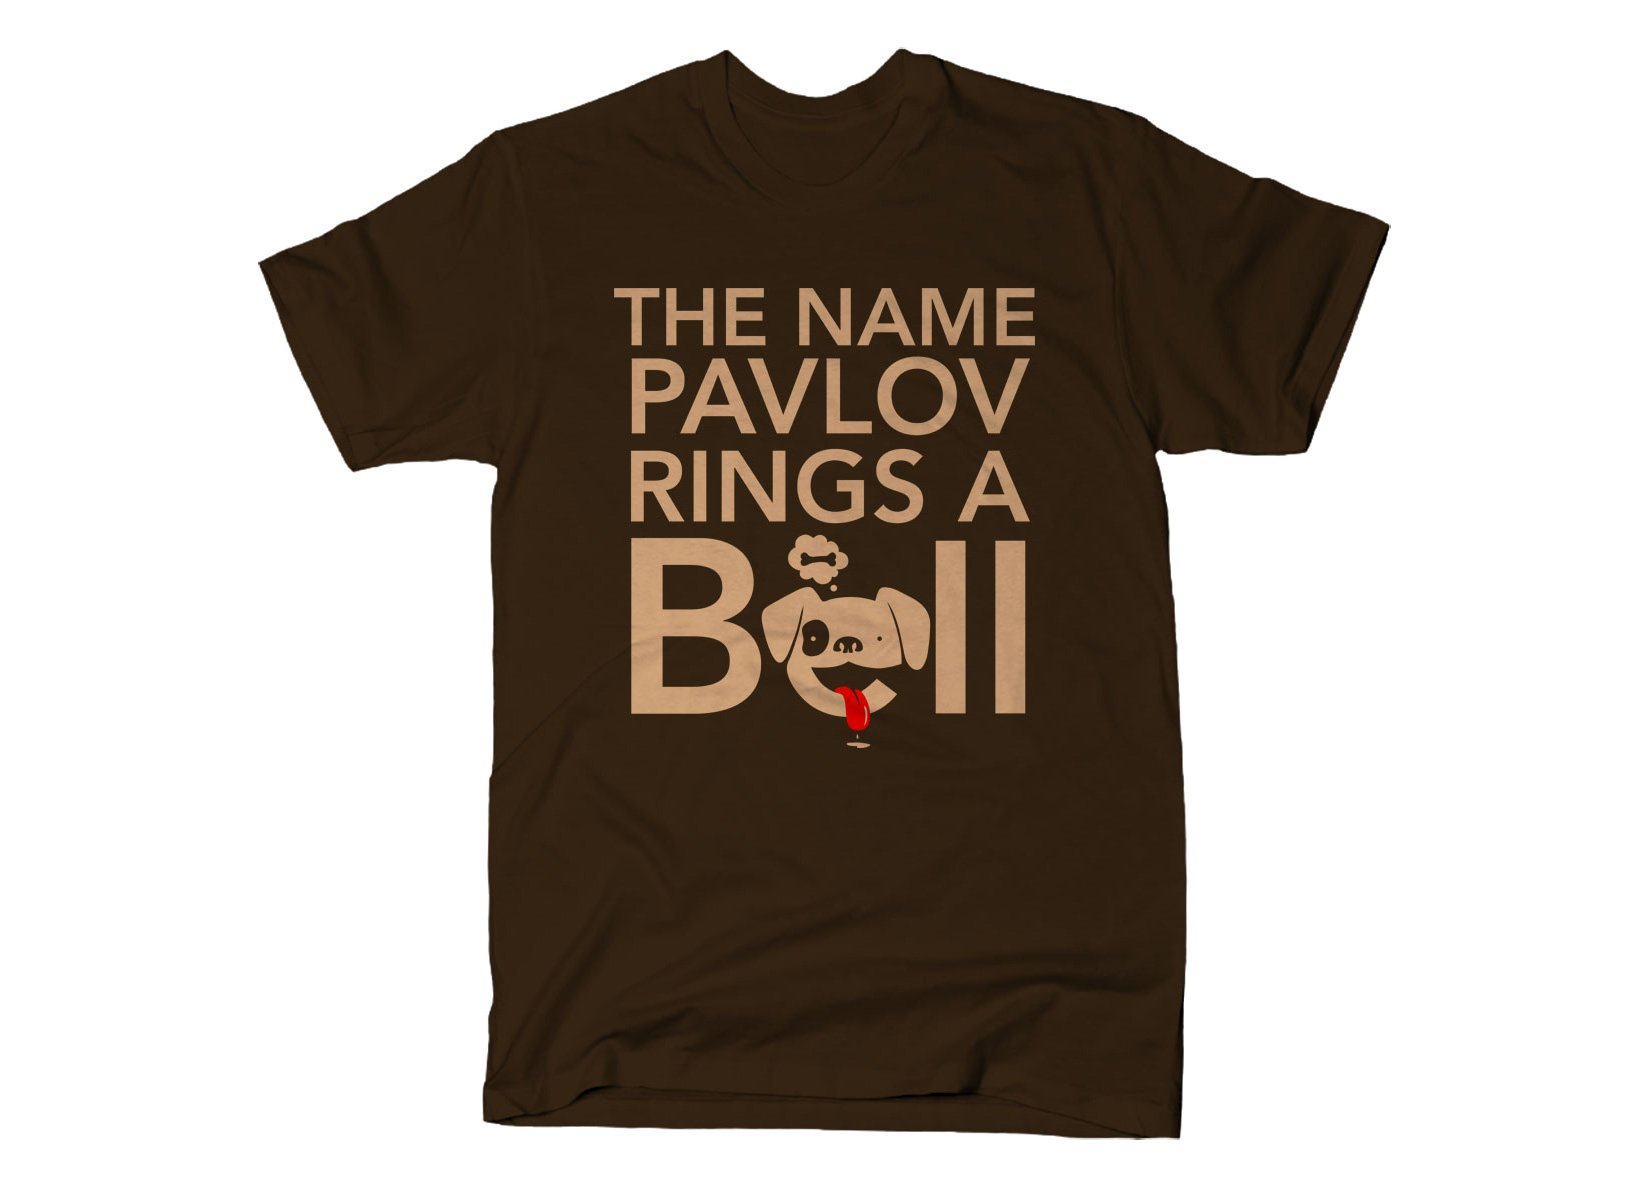 The Name Pavlov Rings A Bell on Mens T-Shirt